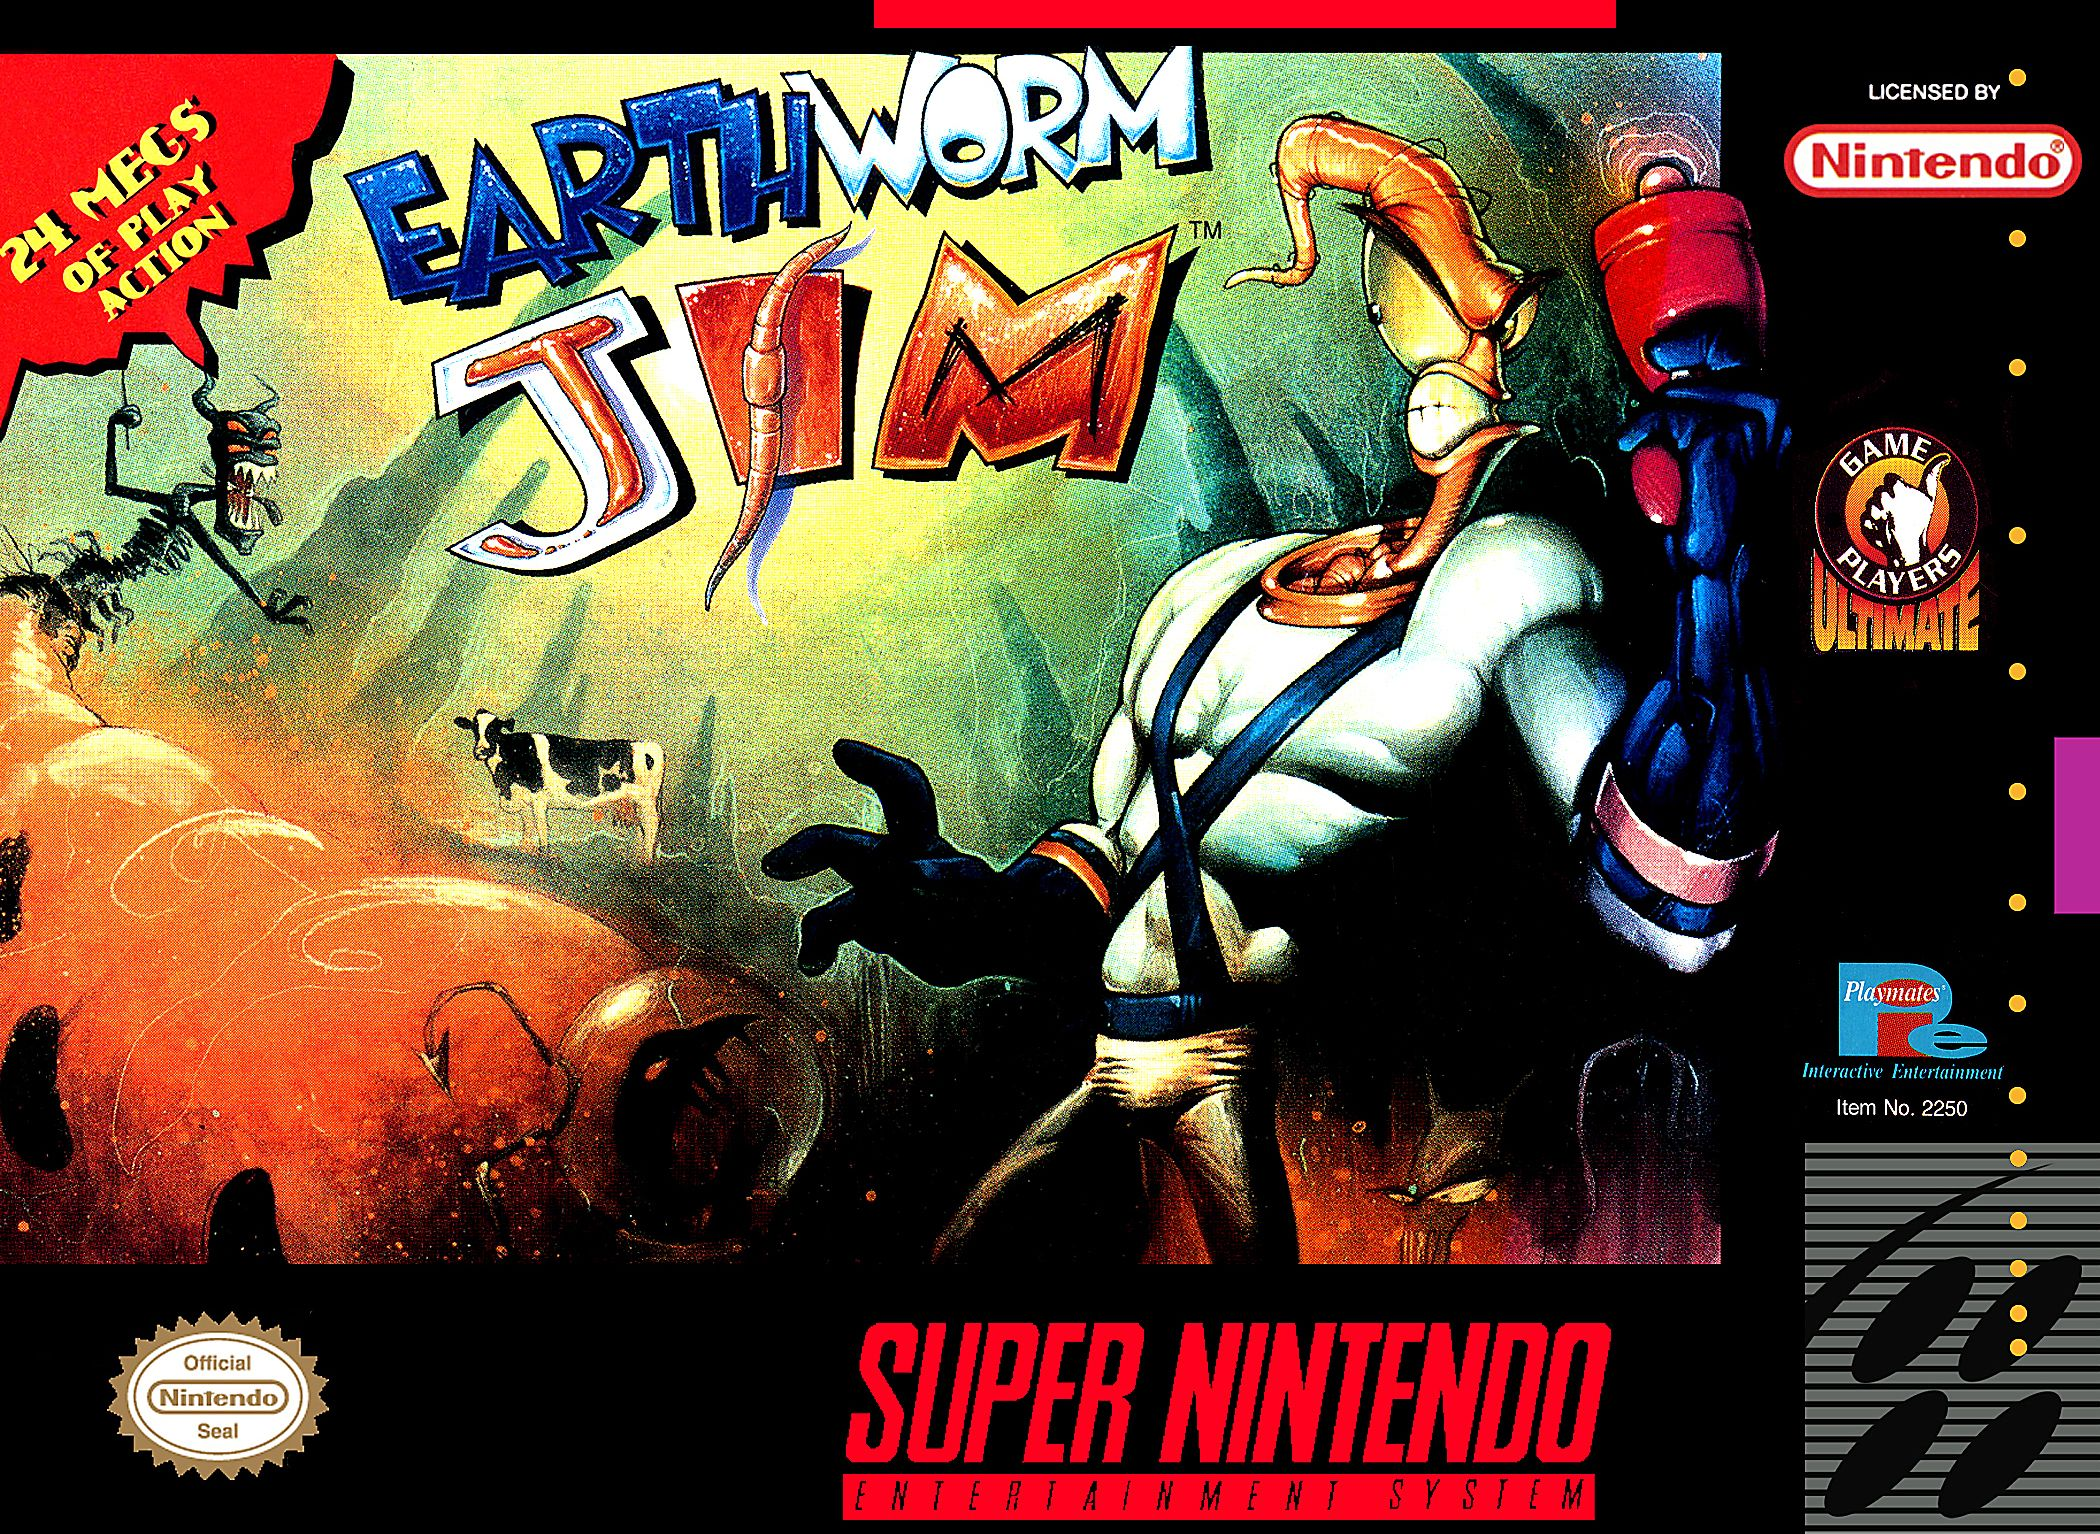 The Best Super Nintendo Games of All Time54  Earthworm Jim